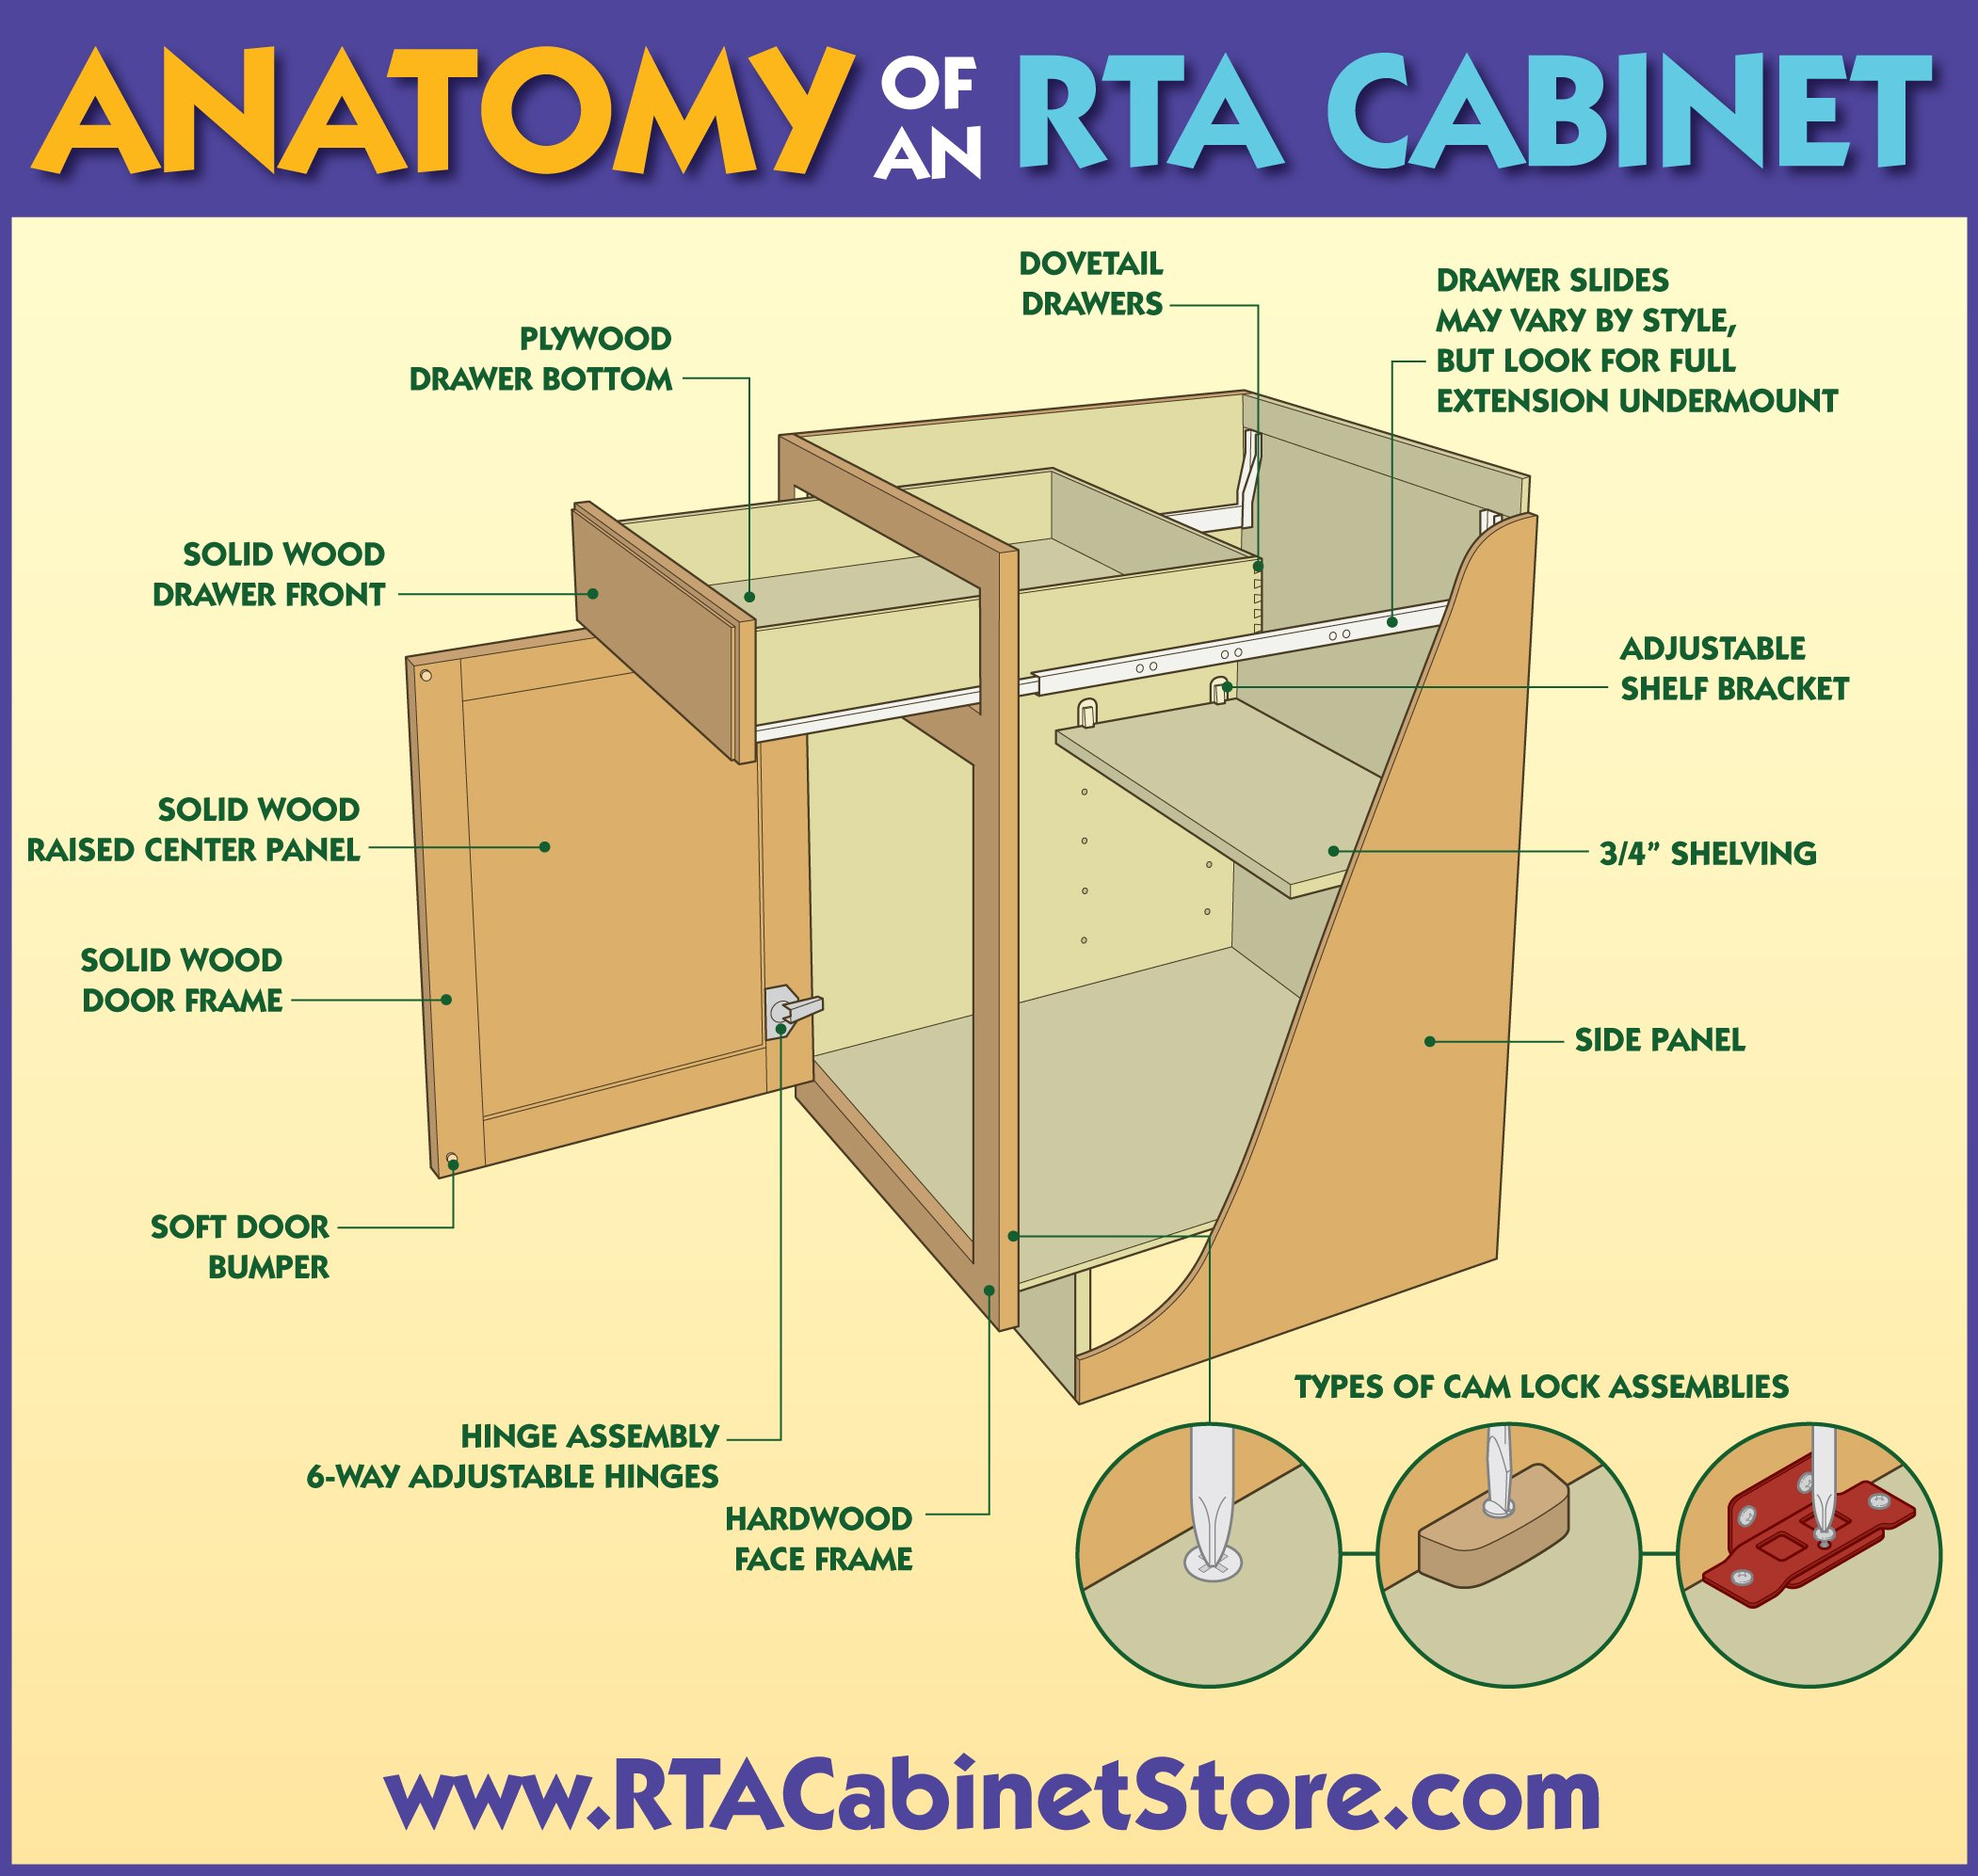 Anatomy Of An RTA Cabinet